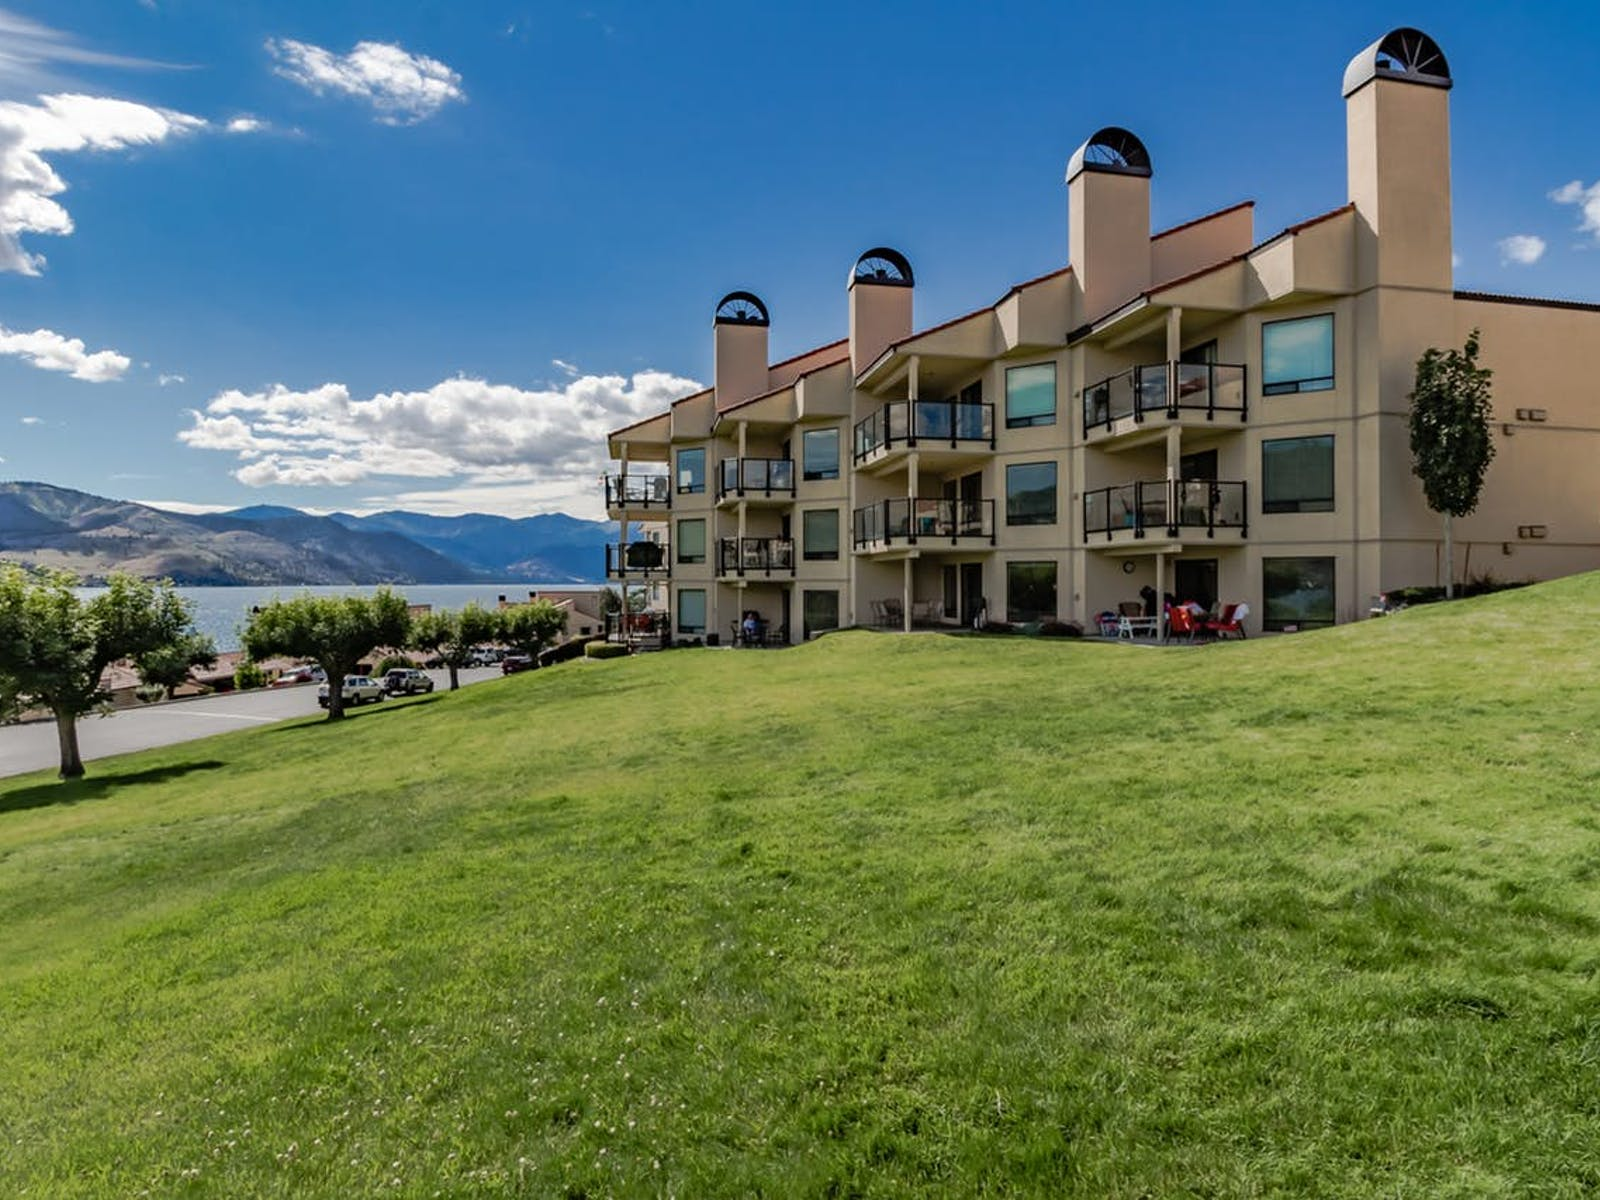 Chelan Shores vacation rentals with beautiful views of the lake